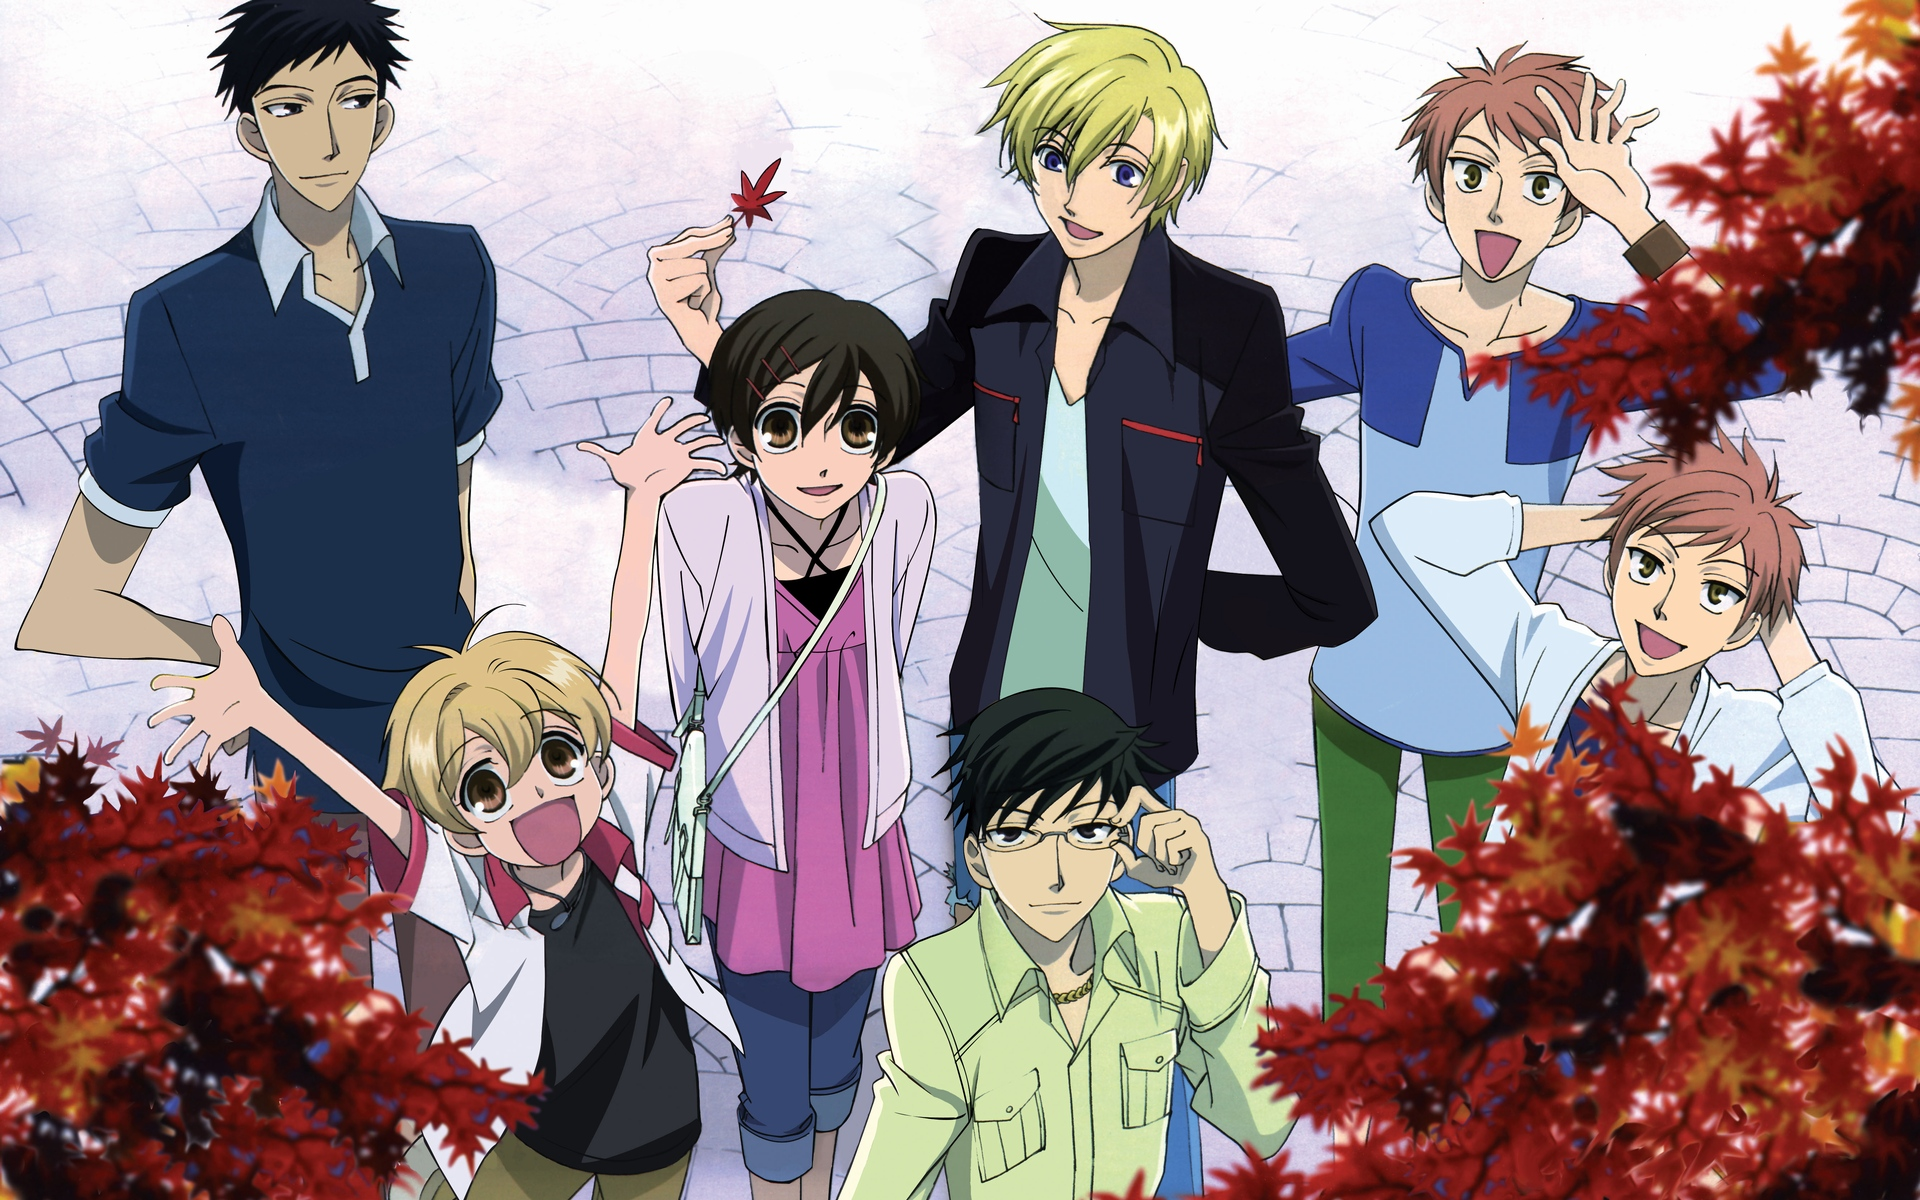 Reverse harem anime manga ouran high school host club